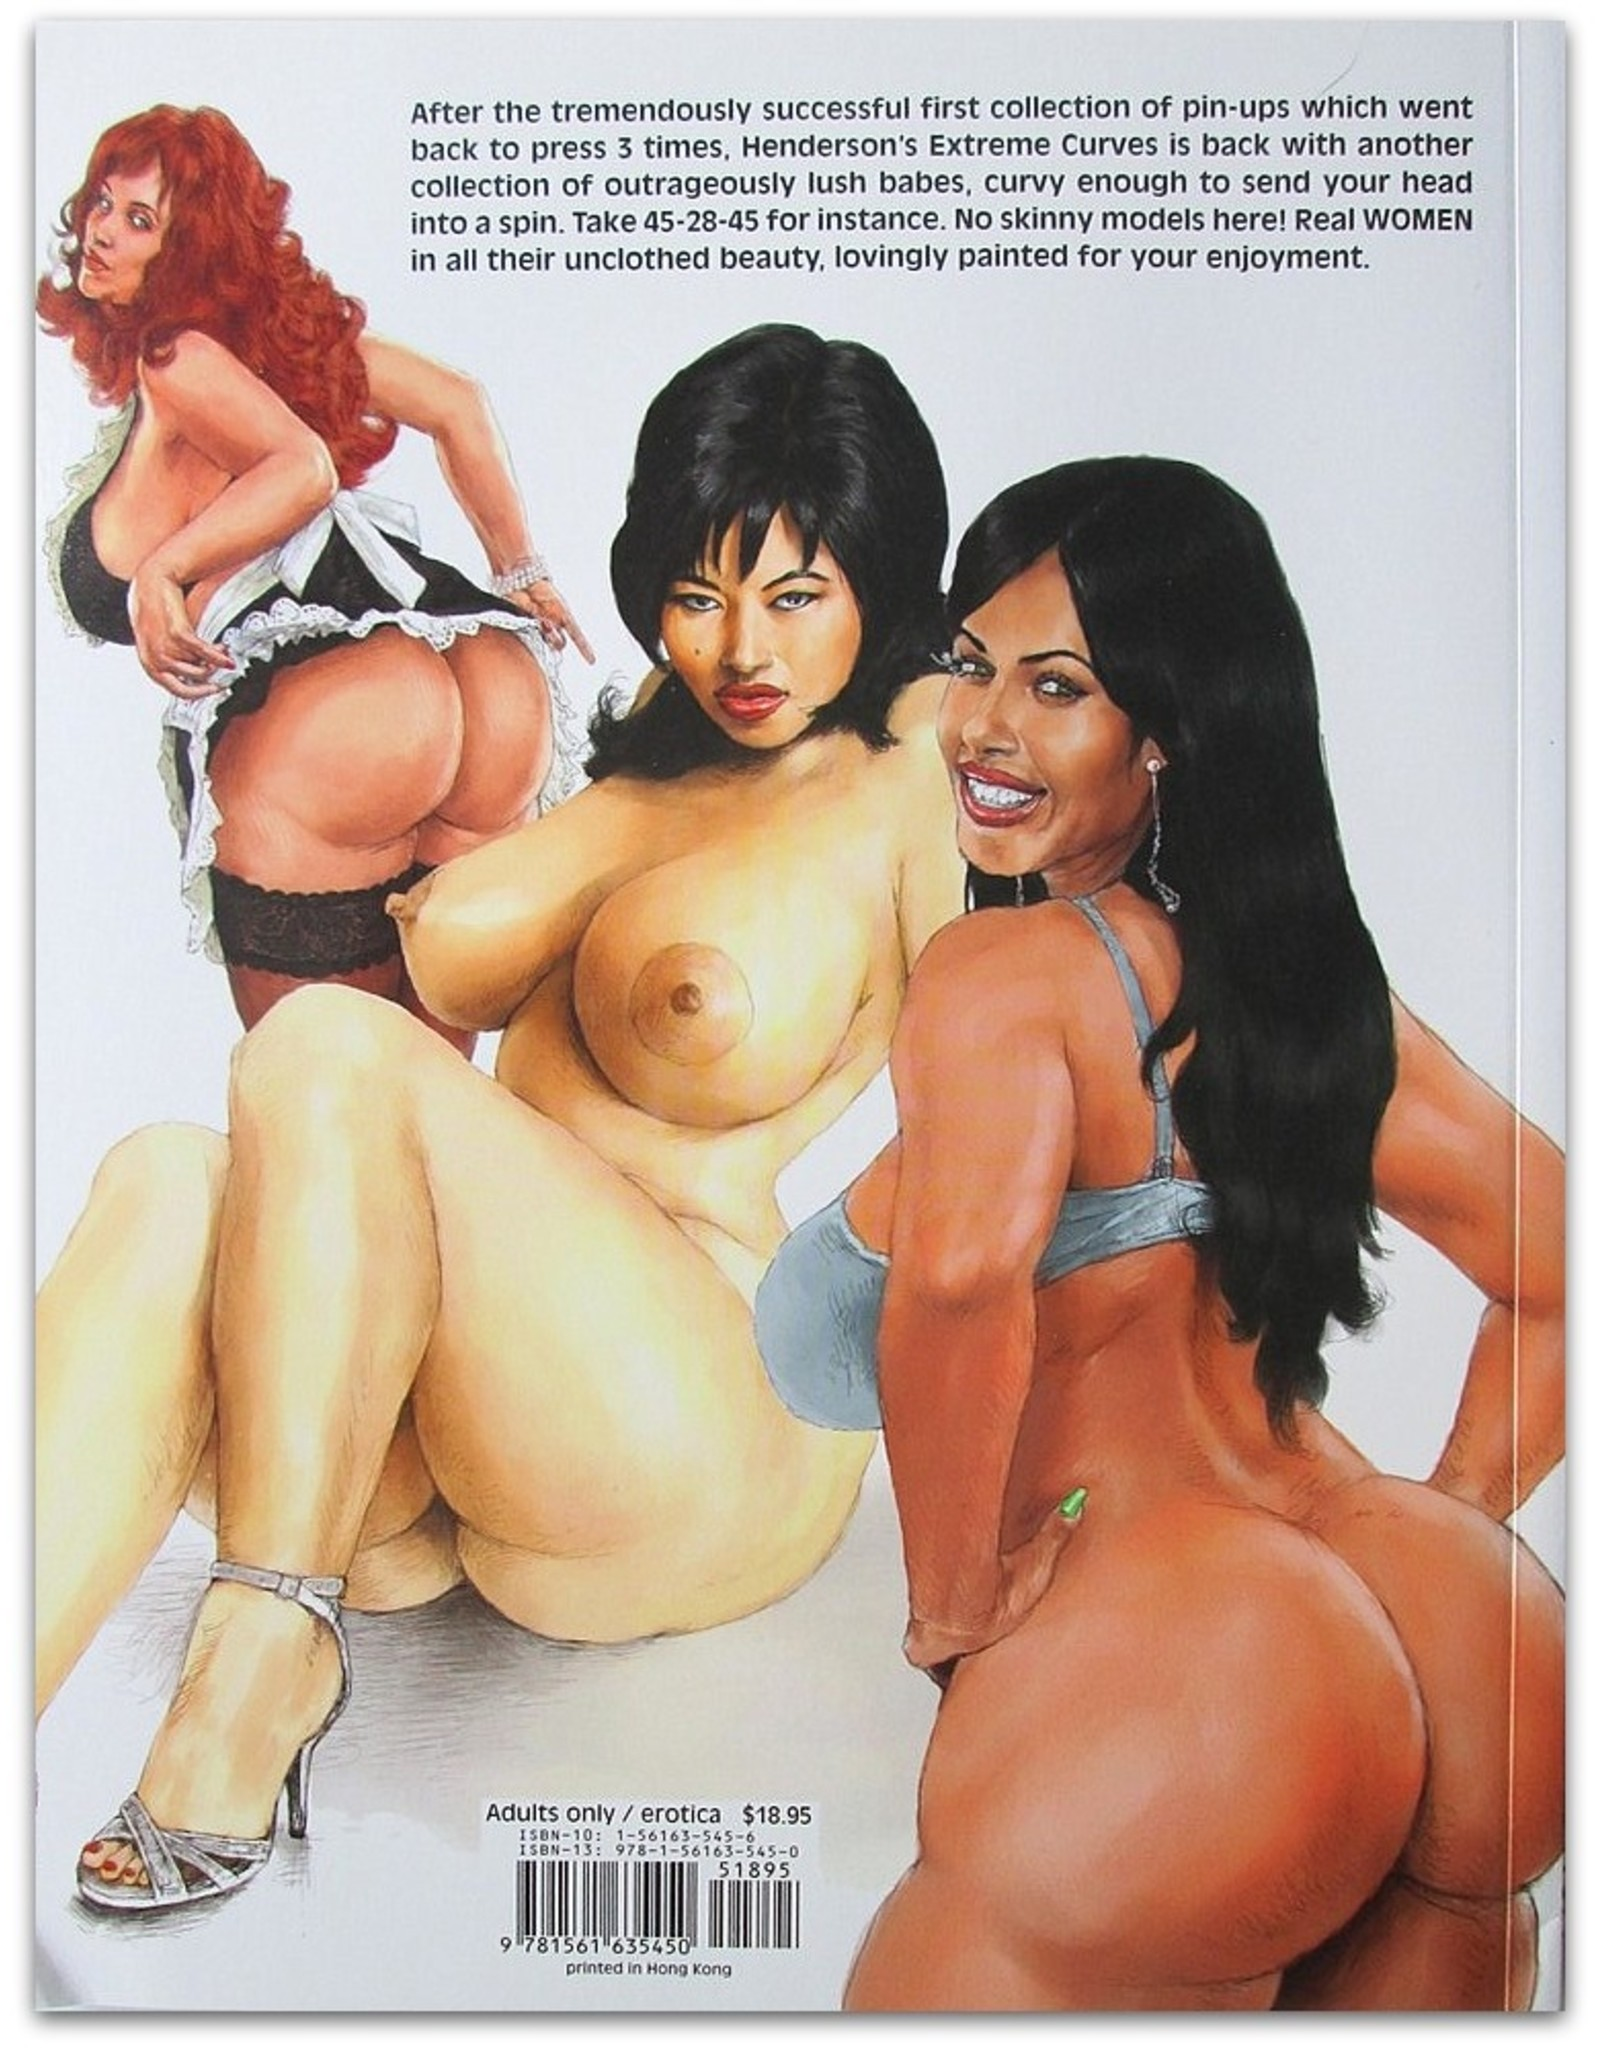 Phil Henderson - Extreme Curves: Phat Girls